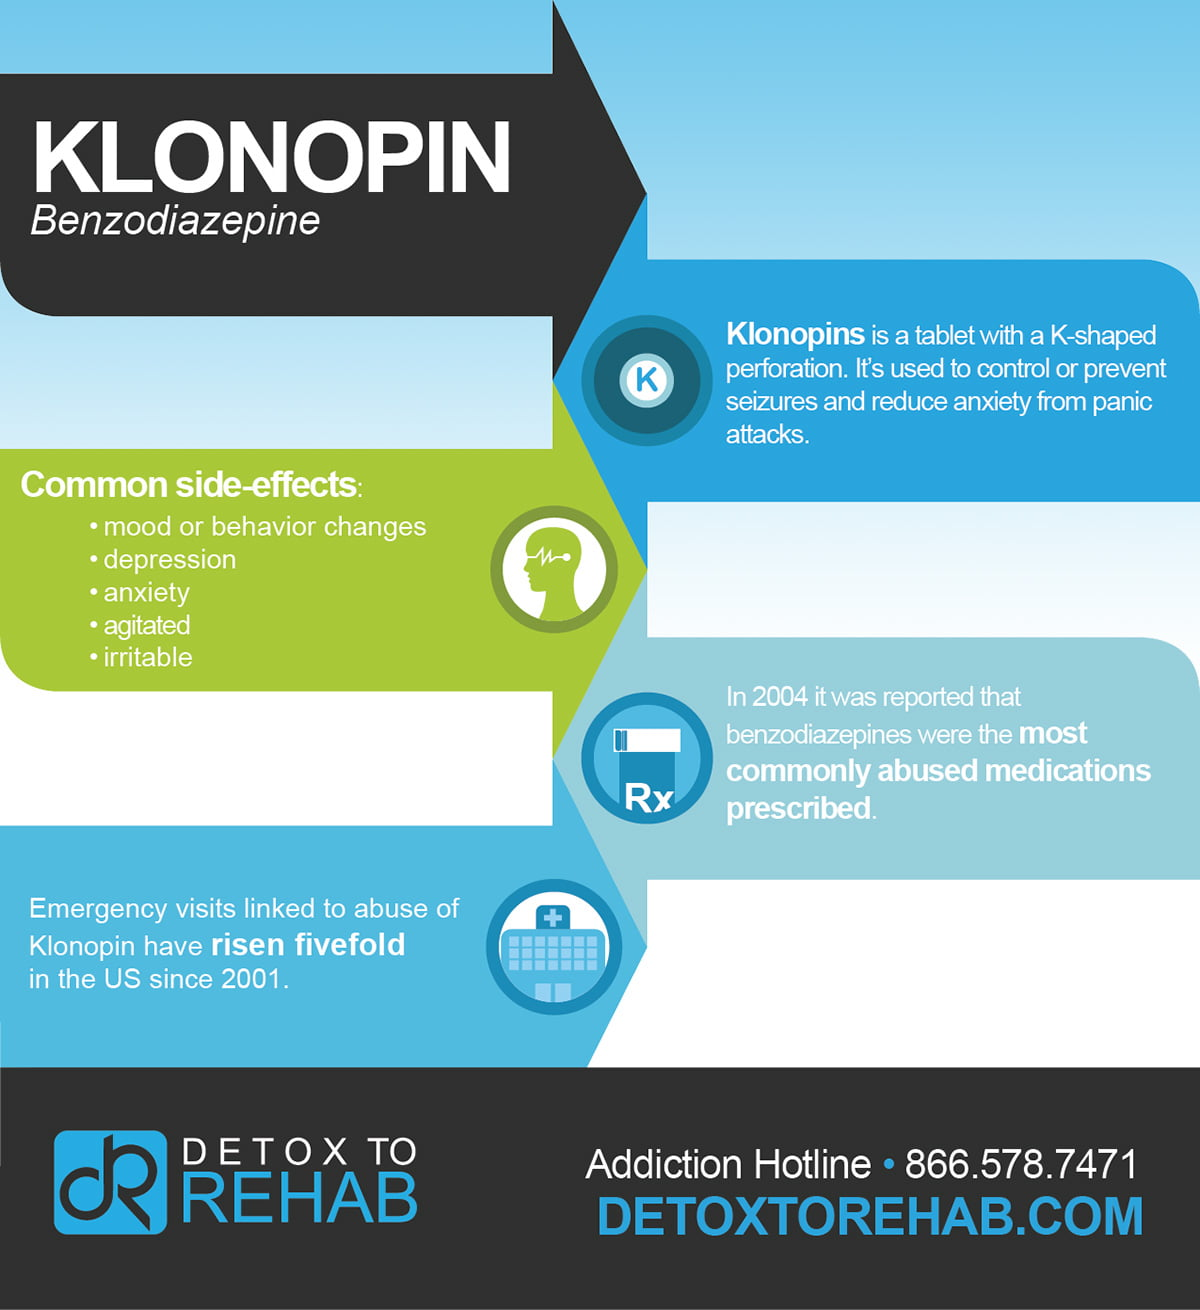 klonopin overdose amount for morphine addiction